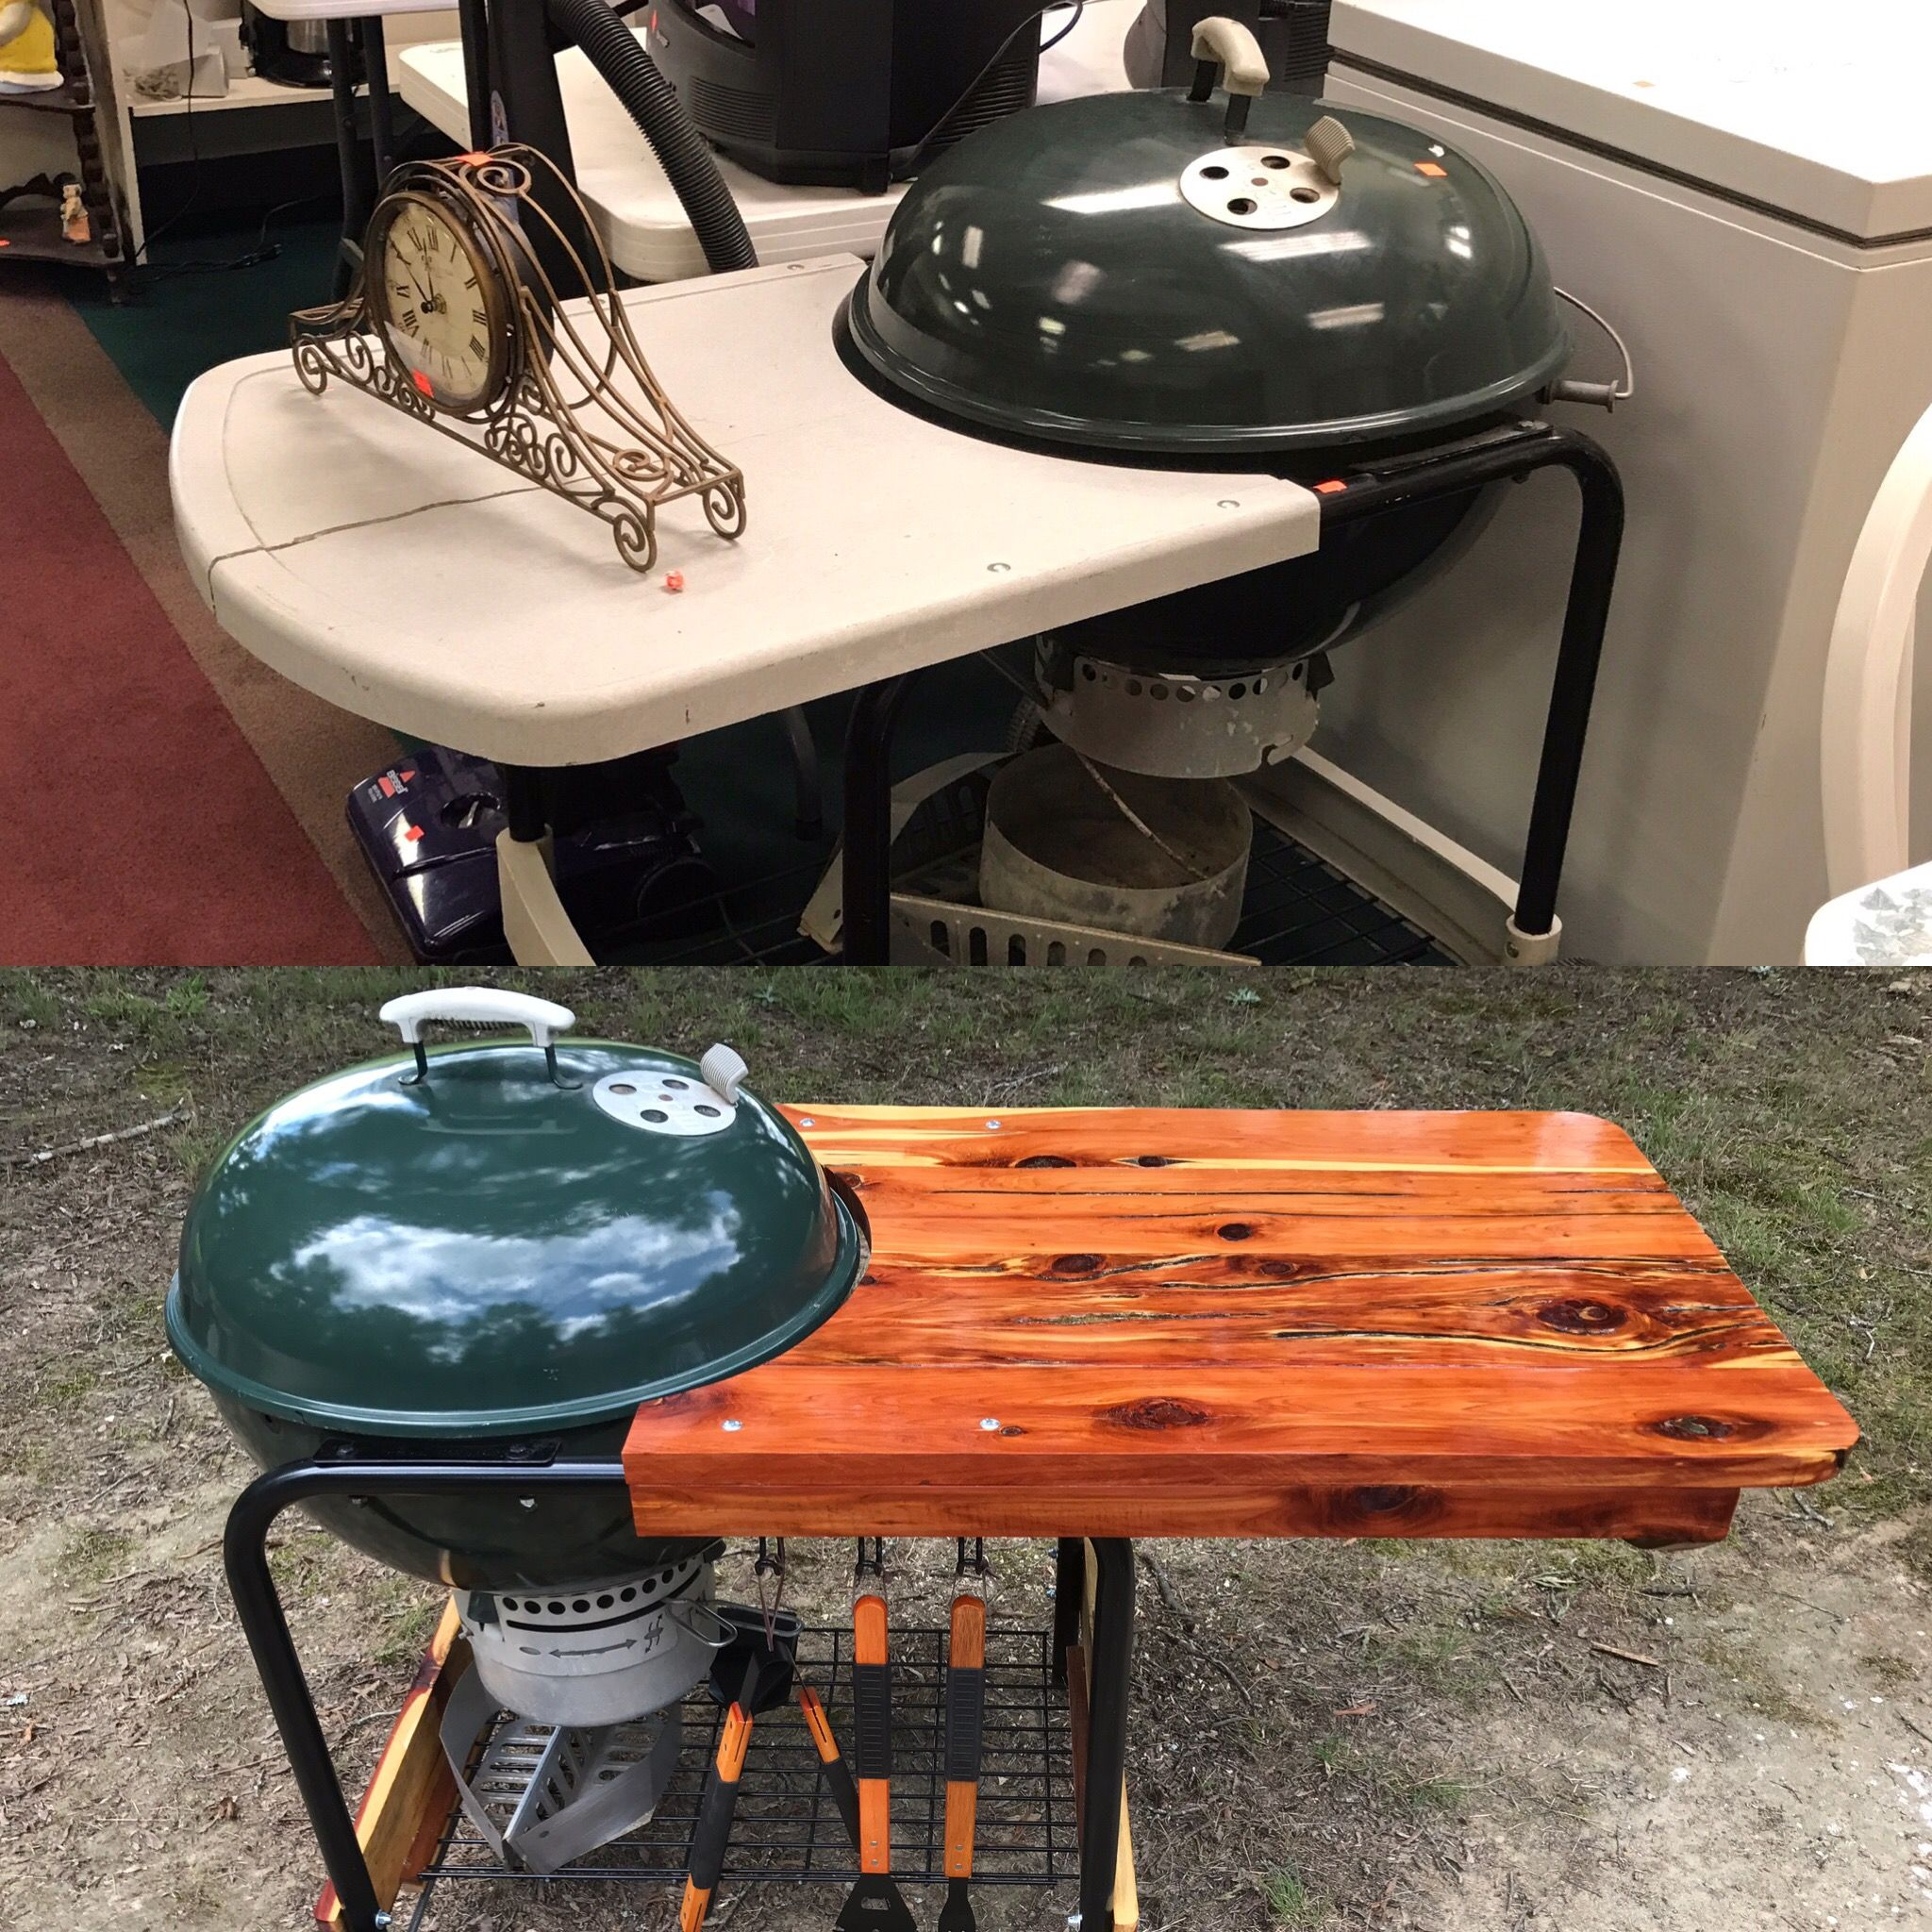 Rebuilt The Table For A 25 Weber Grill Thrift Store Find Http